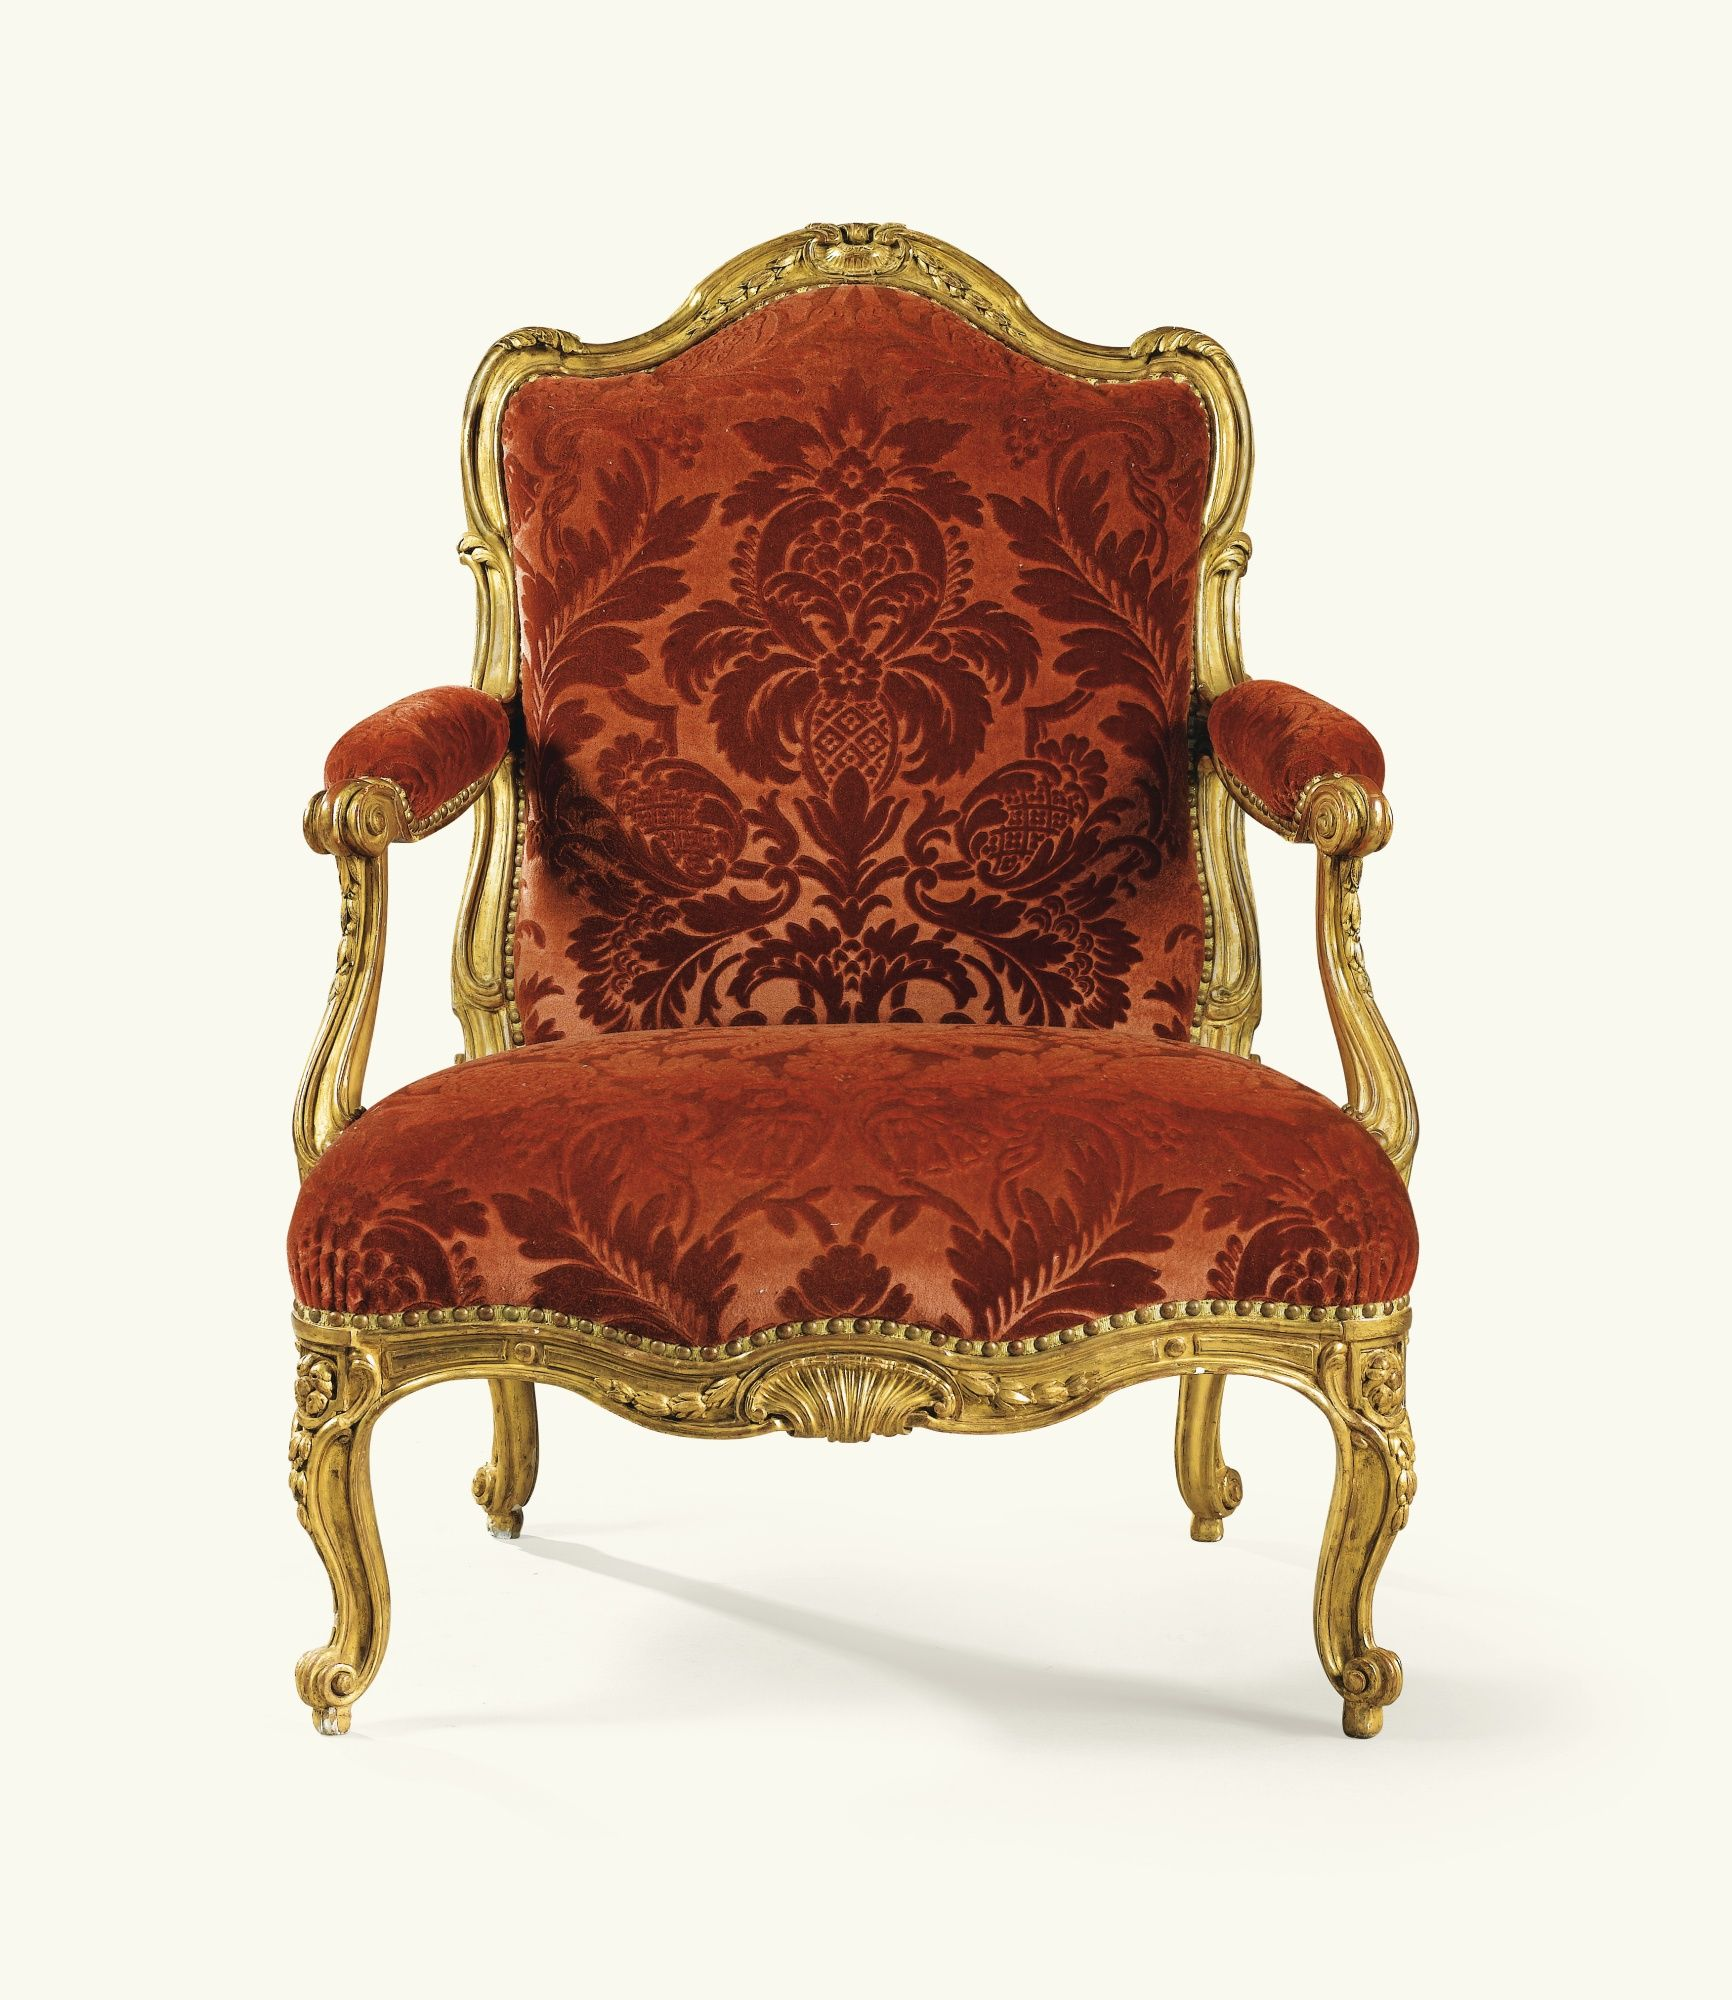 1000 ideas about chaise louis xv on pinterest louis xv meuble louis xv an - Meuble style louis xv ...